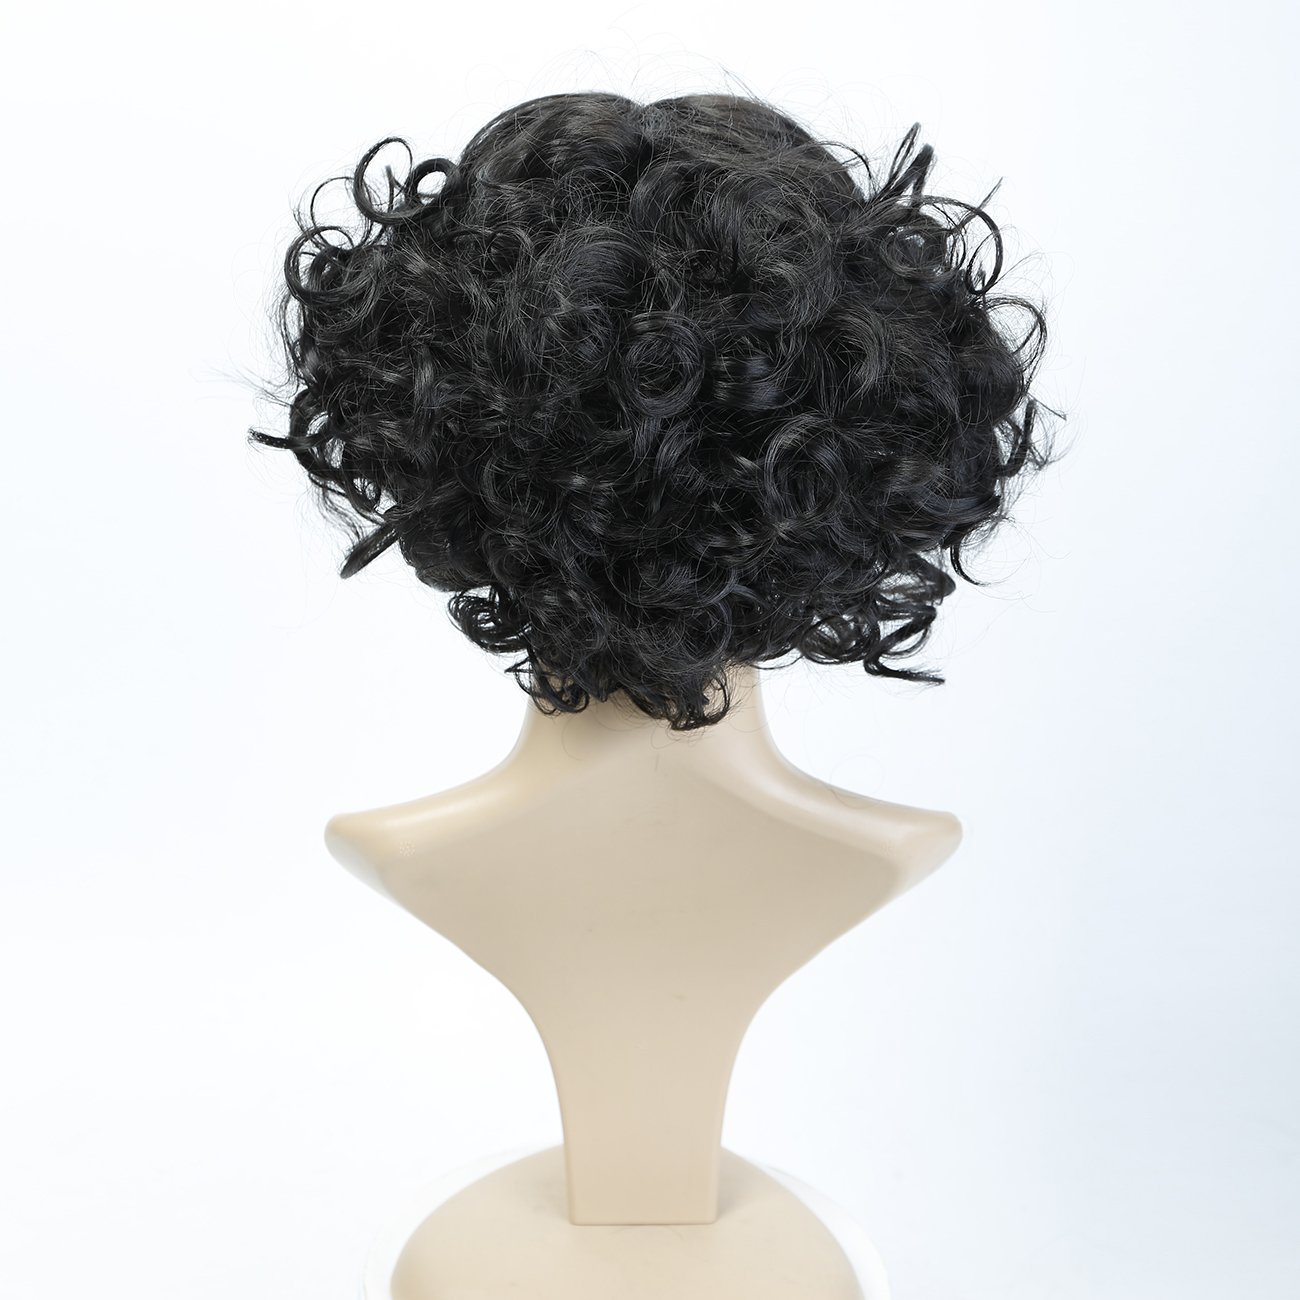 Amazon.com : MEIFAN WIG Black Short Curly Wigs Pelucas De Cabello Natural Synthetic Hair Halloween Party Wigs For Black Women : Beauty